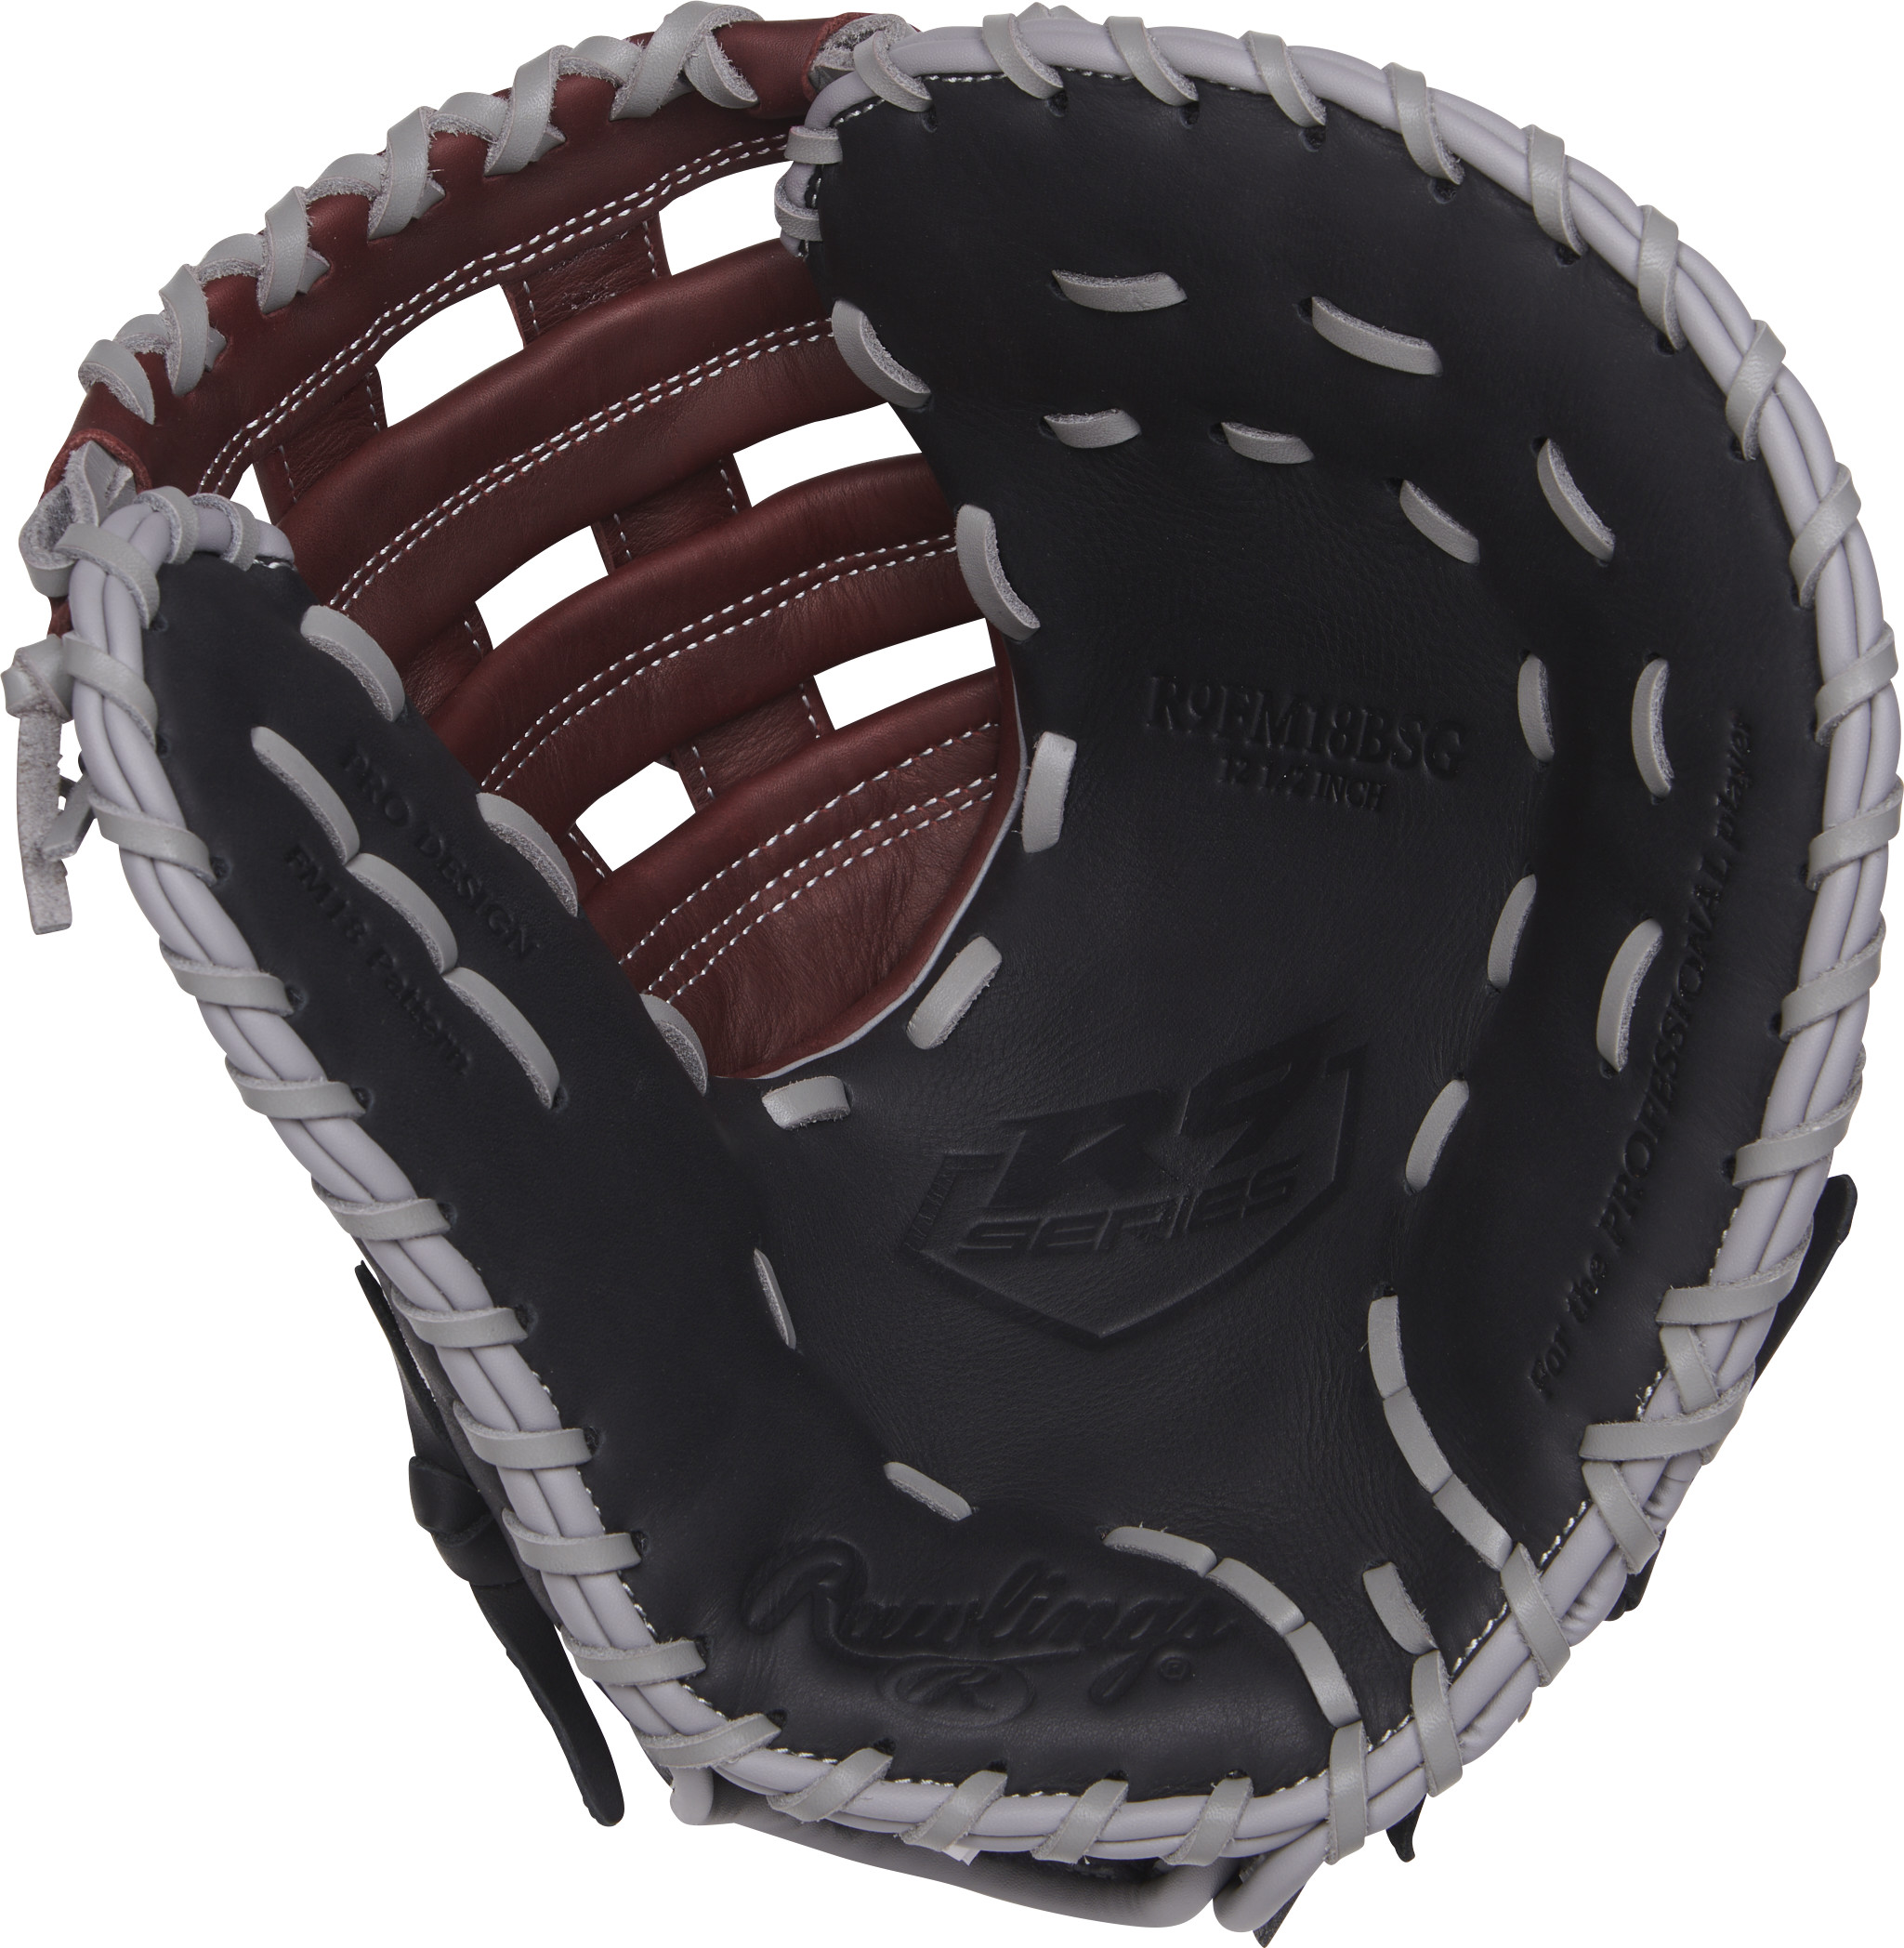 http://www.bestbatdeals.com/images/gloves/rawlings/R9FM18BSG-1.jpg